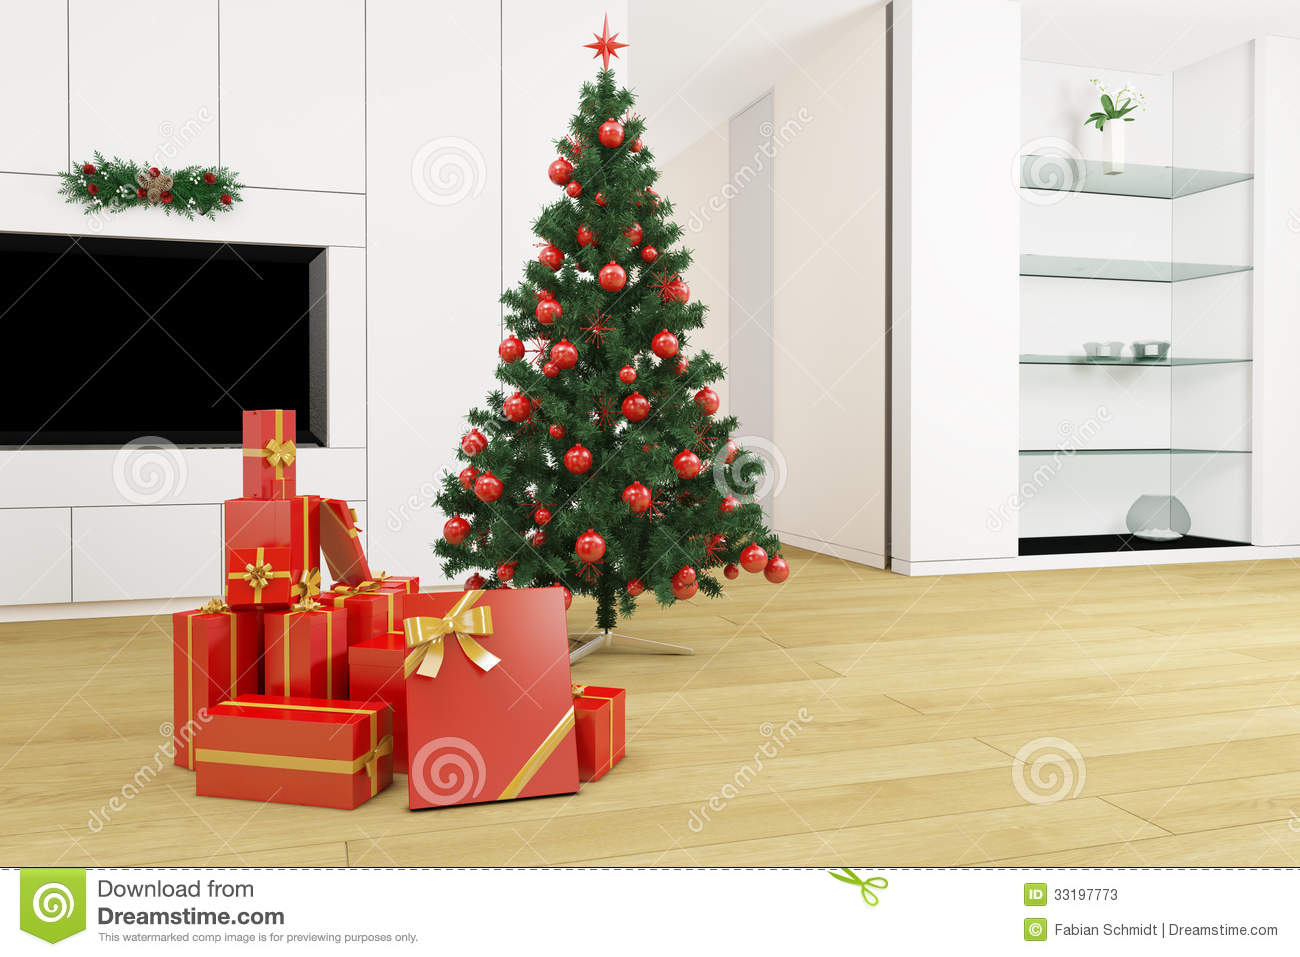 Christmas Tree Living Room living room with christmas tree stock photos - image: 33197773